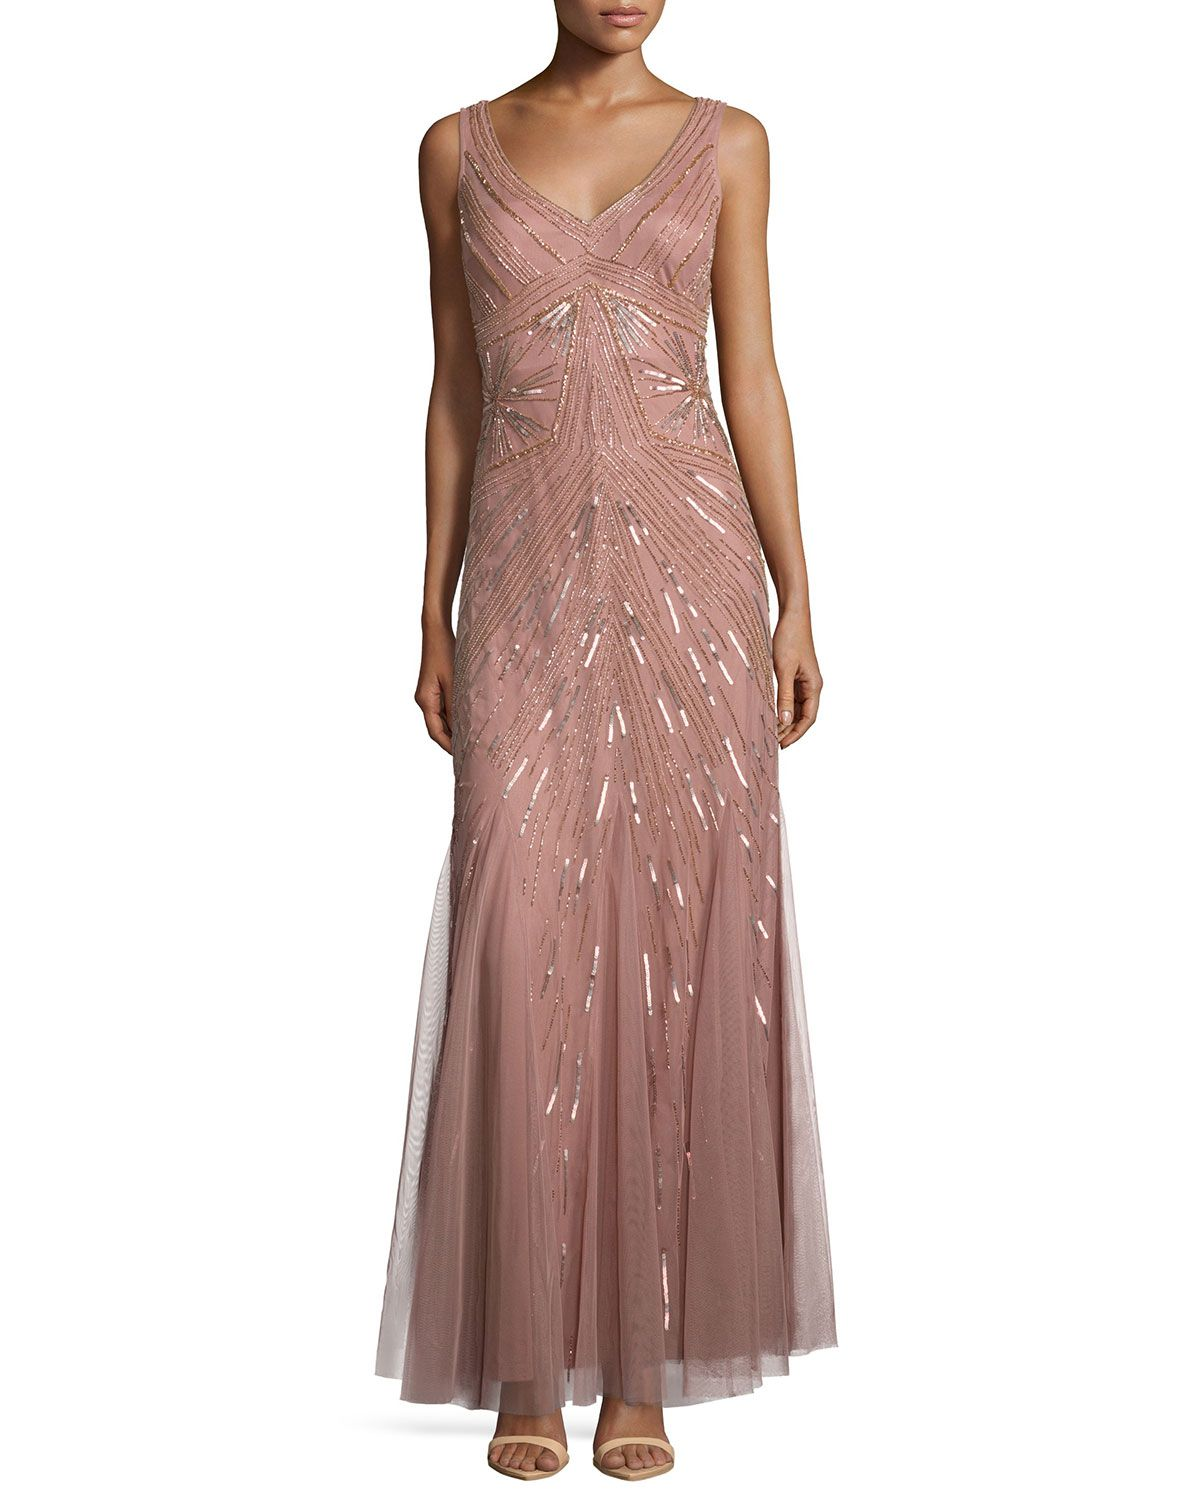 Aidan Mattox Sleeveless Two-Tone Beaded Gown | Gorgeous Gowns ...